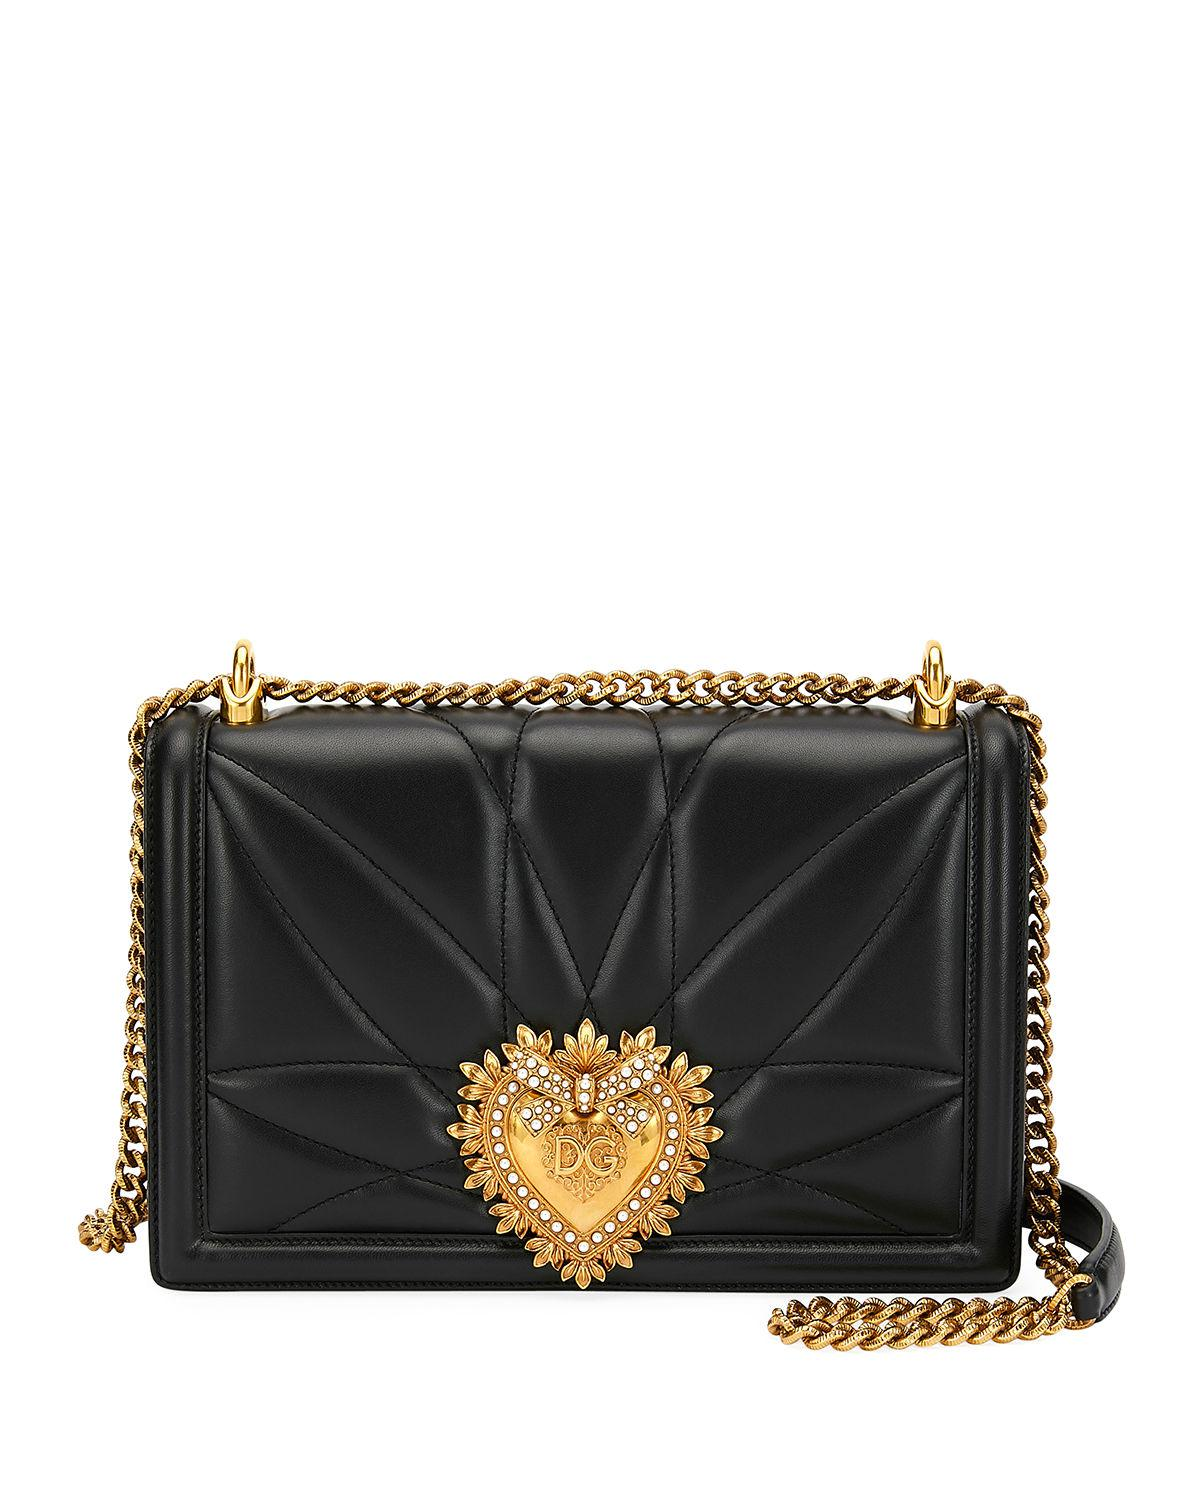 a7ecbdb4ea Dolce   Gabbana Devotion Large Quilted Crossbody Bag In Black